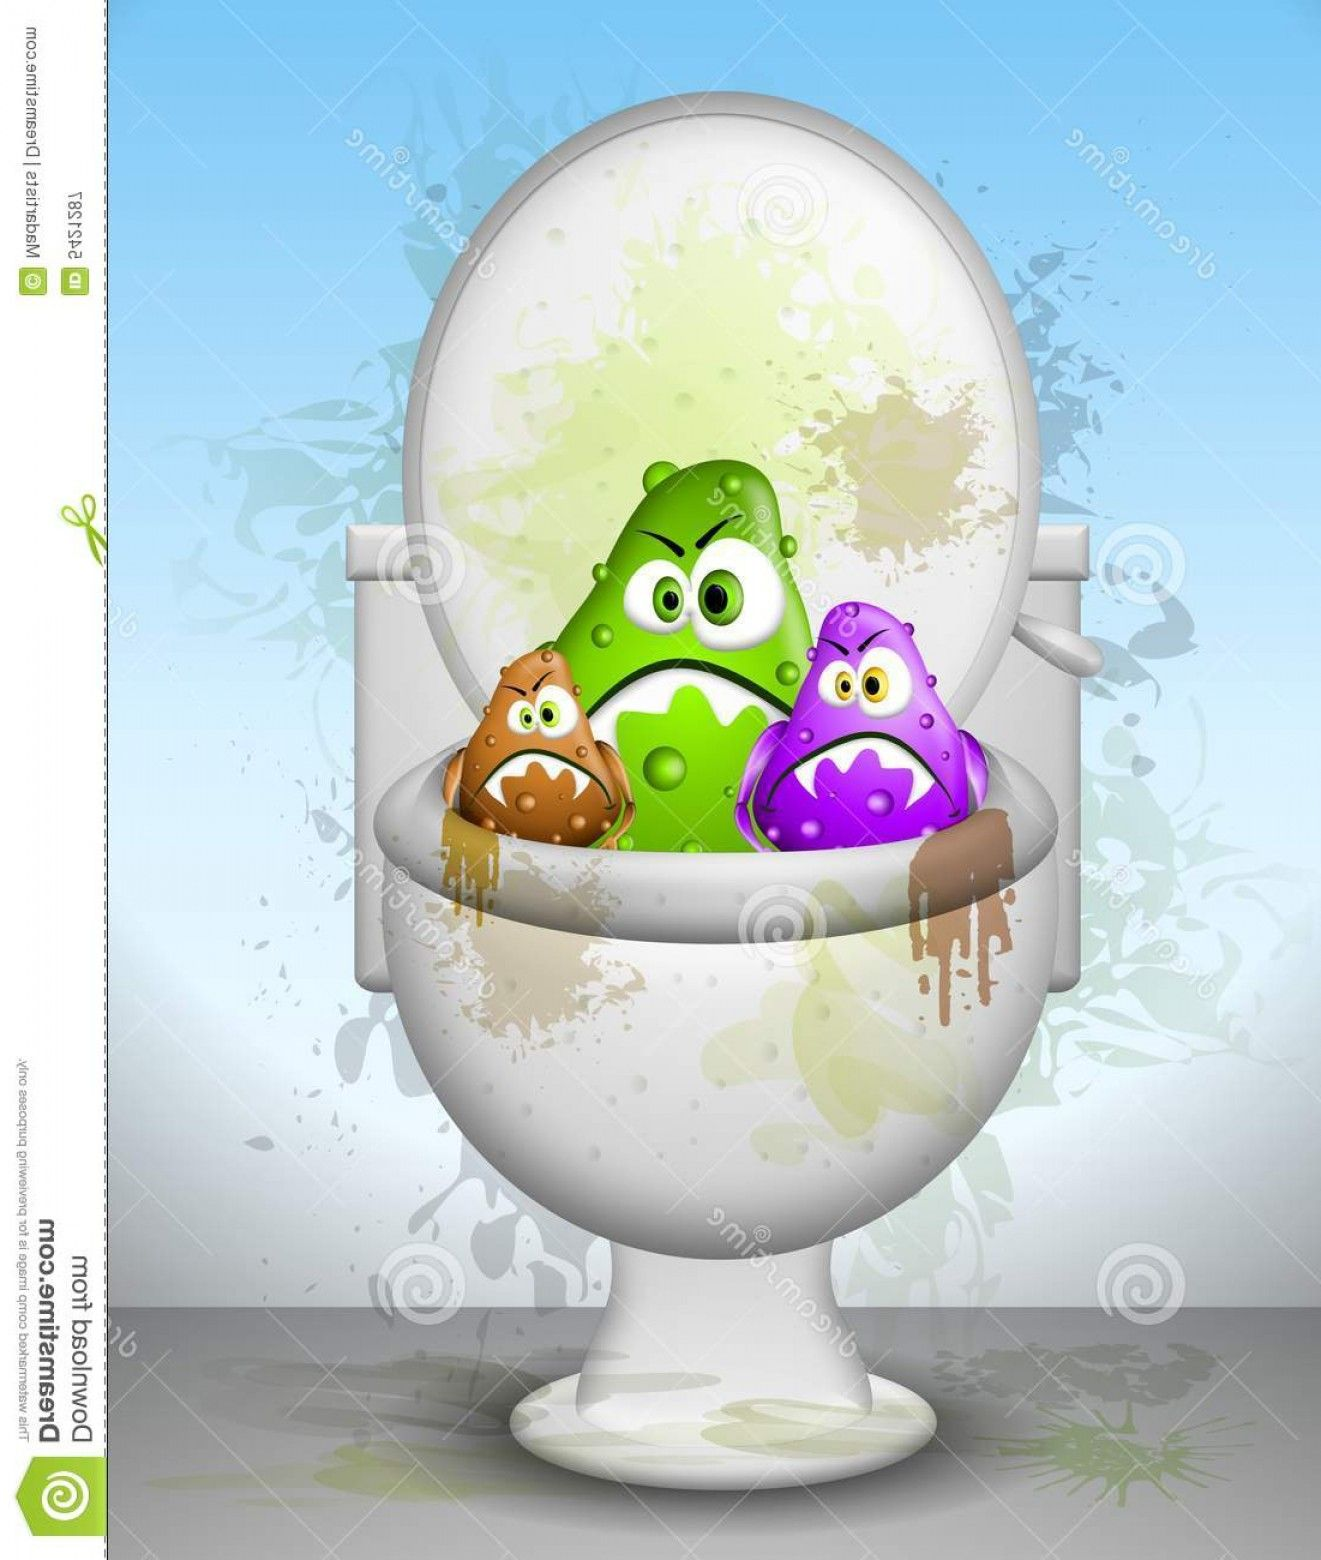 Dirty bathroom clipart banner library library Cartoons Dirty Bathrooms: Royalty Free Stock Photography Ugly Dirty ... banner library library